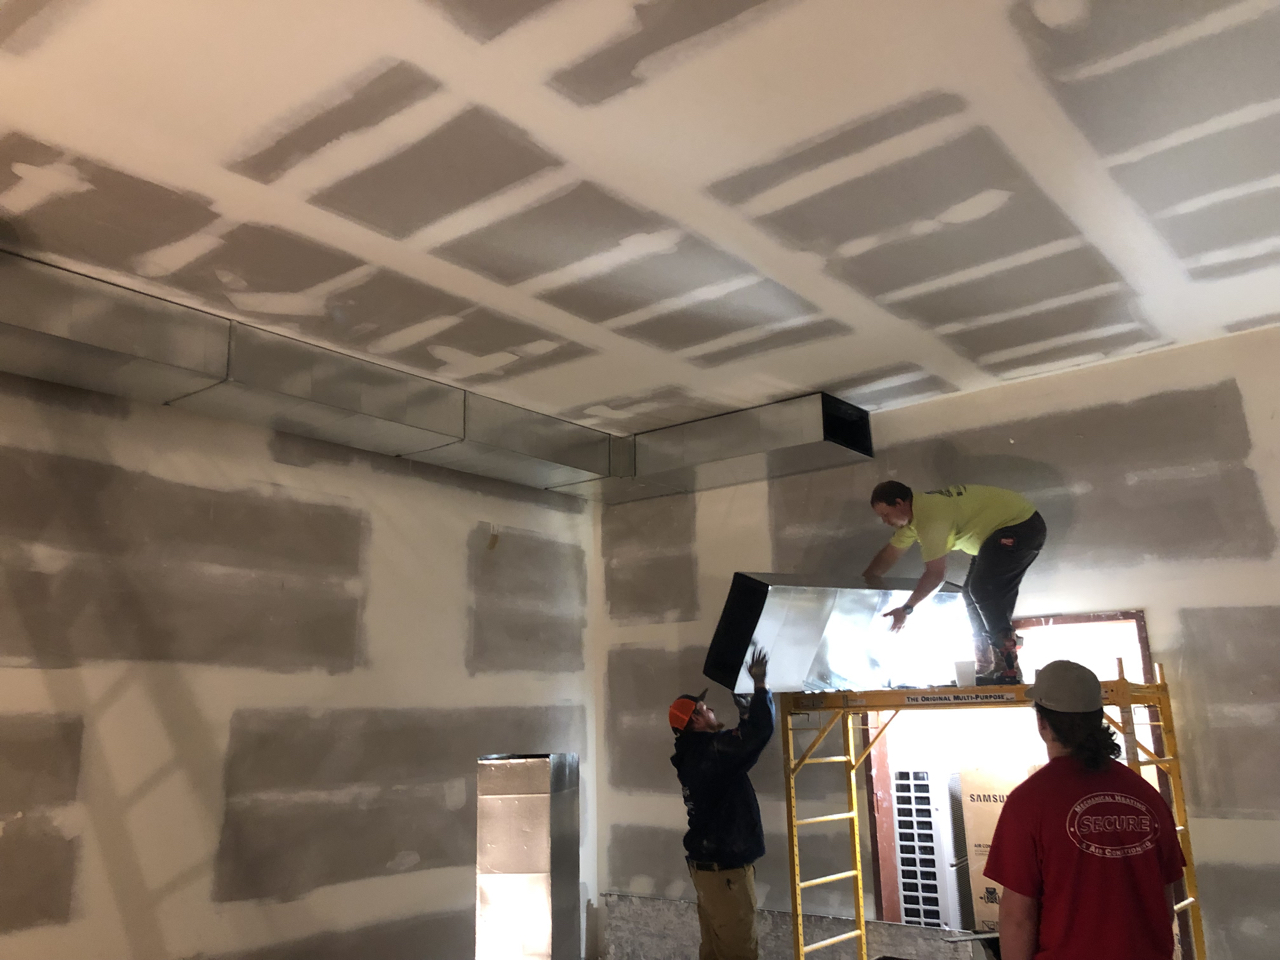 More ductwork in tracking room 2.